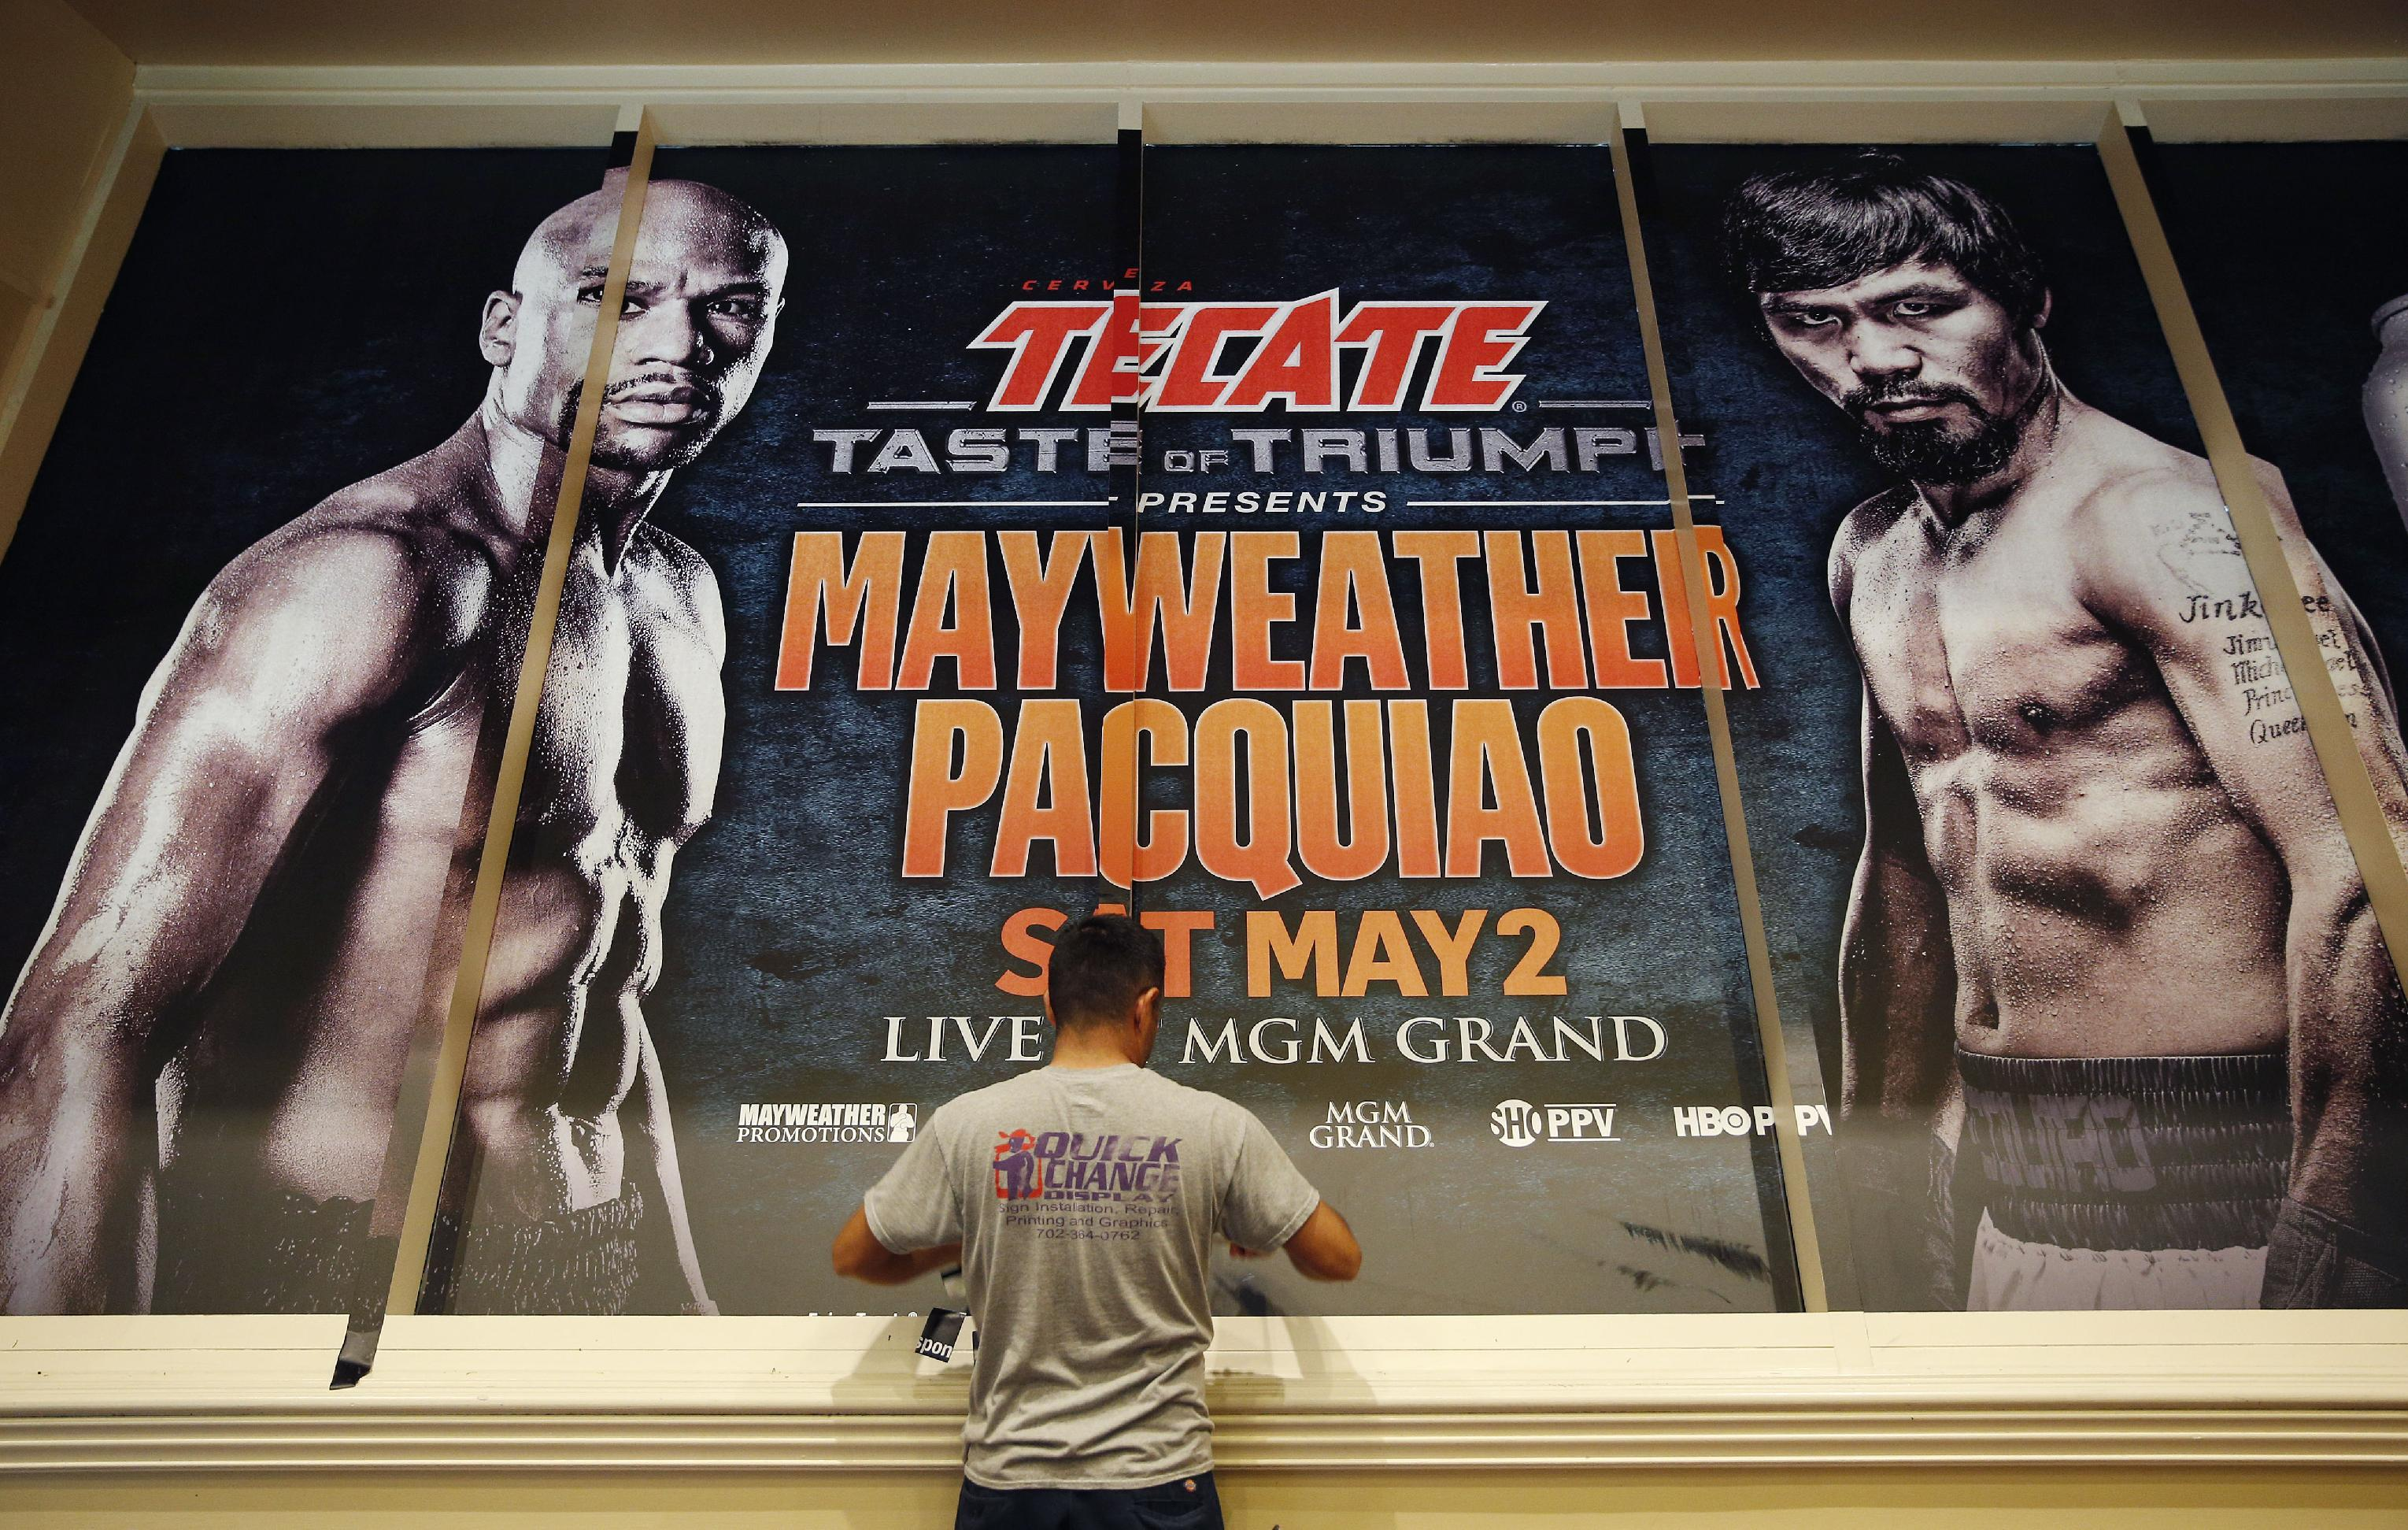 It's here: Fight week begins with Pacquiao caravan to Vegas